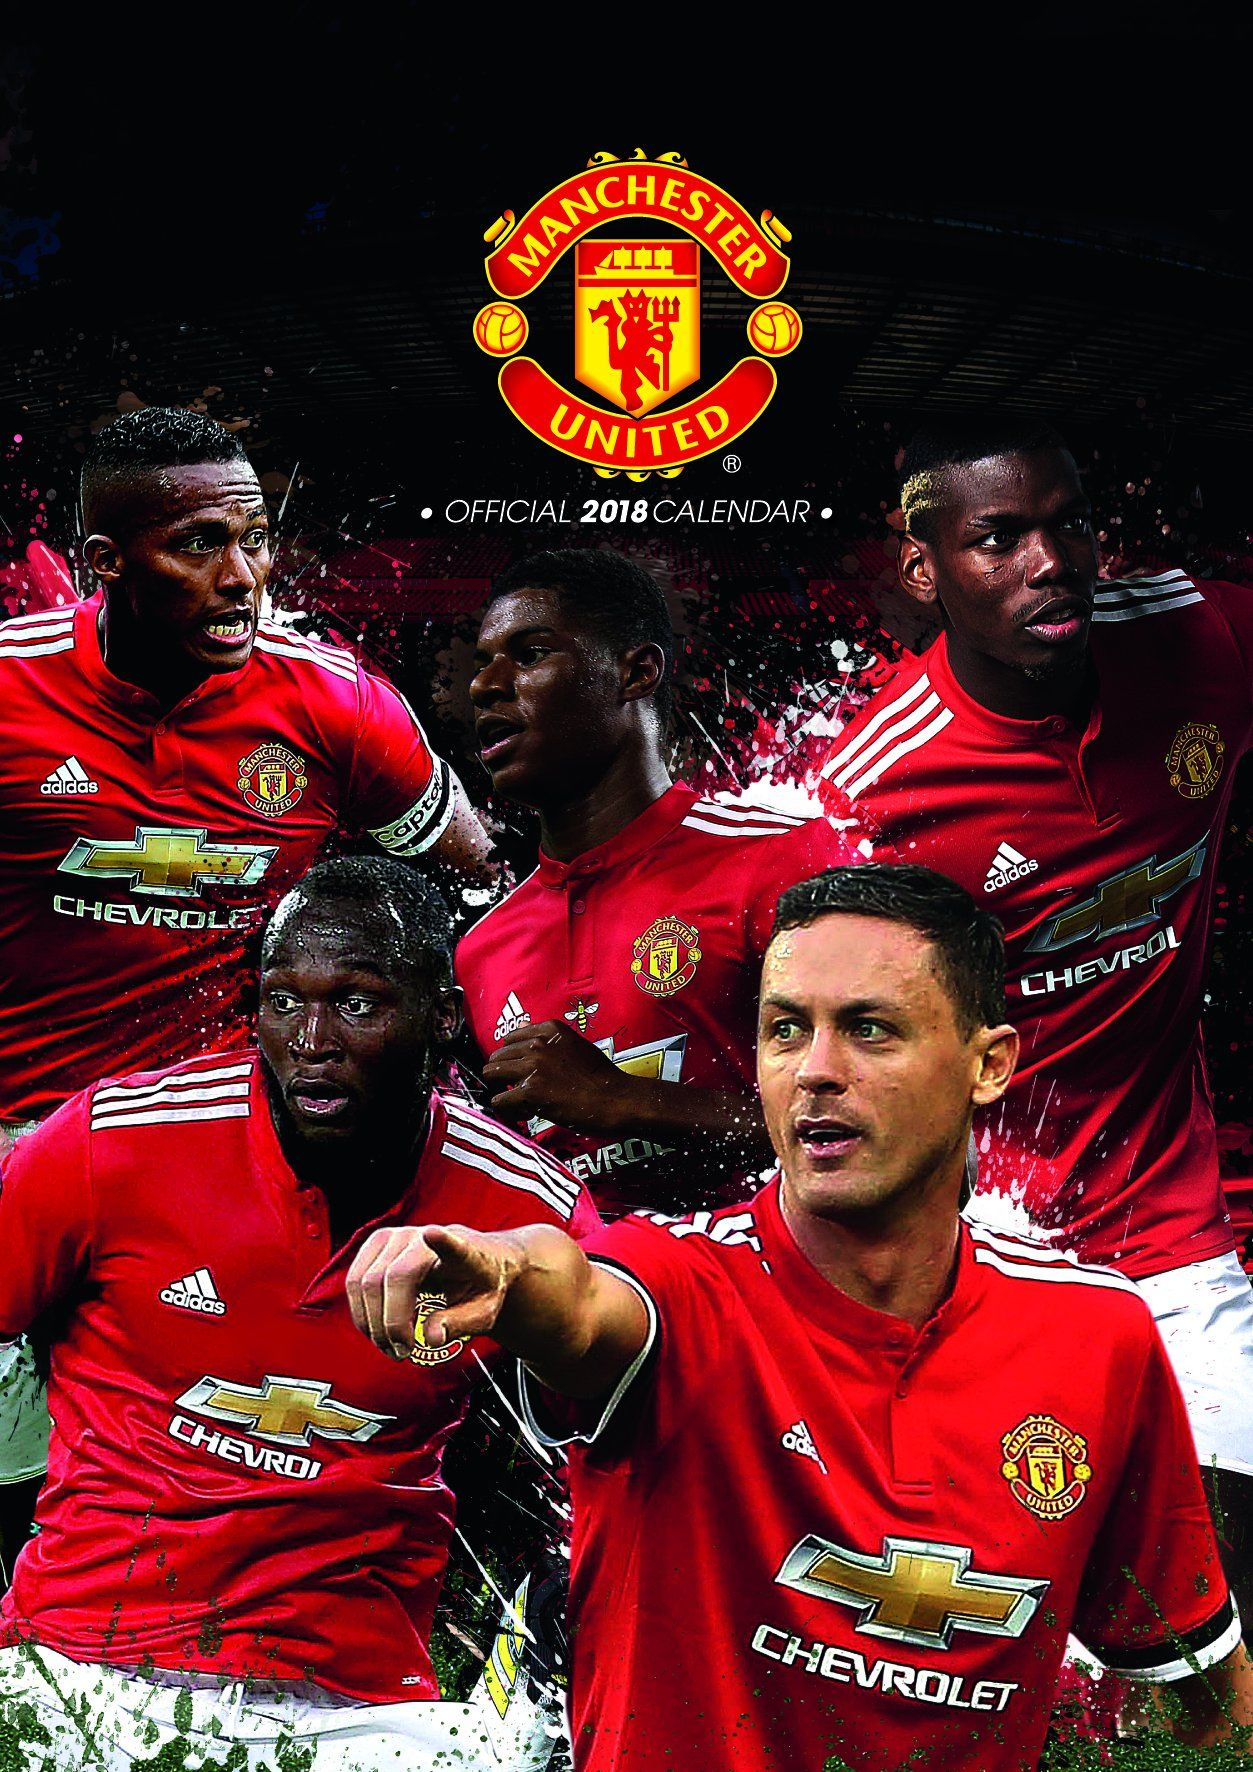 Manchester United F.C. Official 2018 Calendar - A3 Poster Format ...